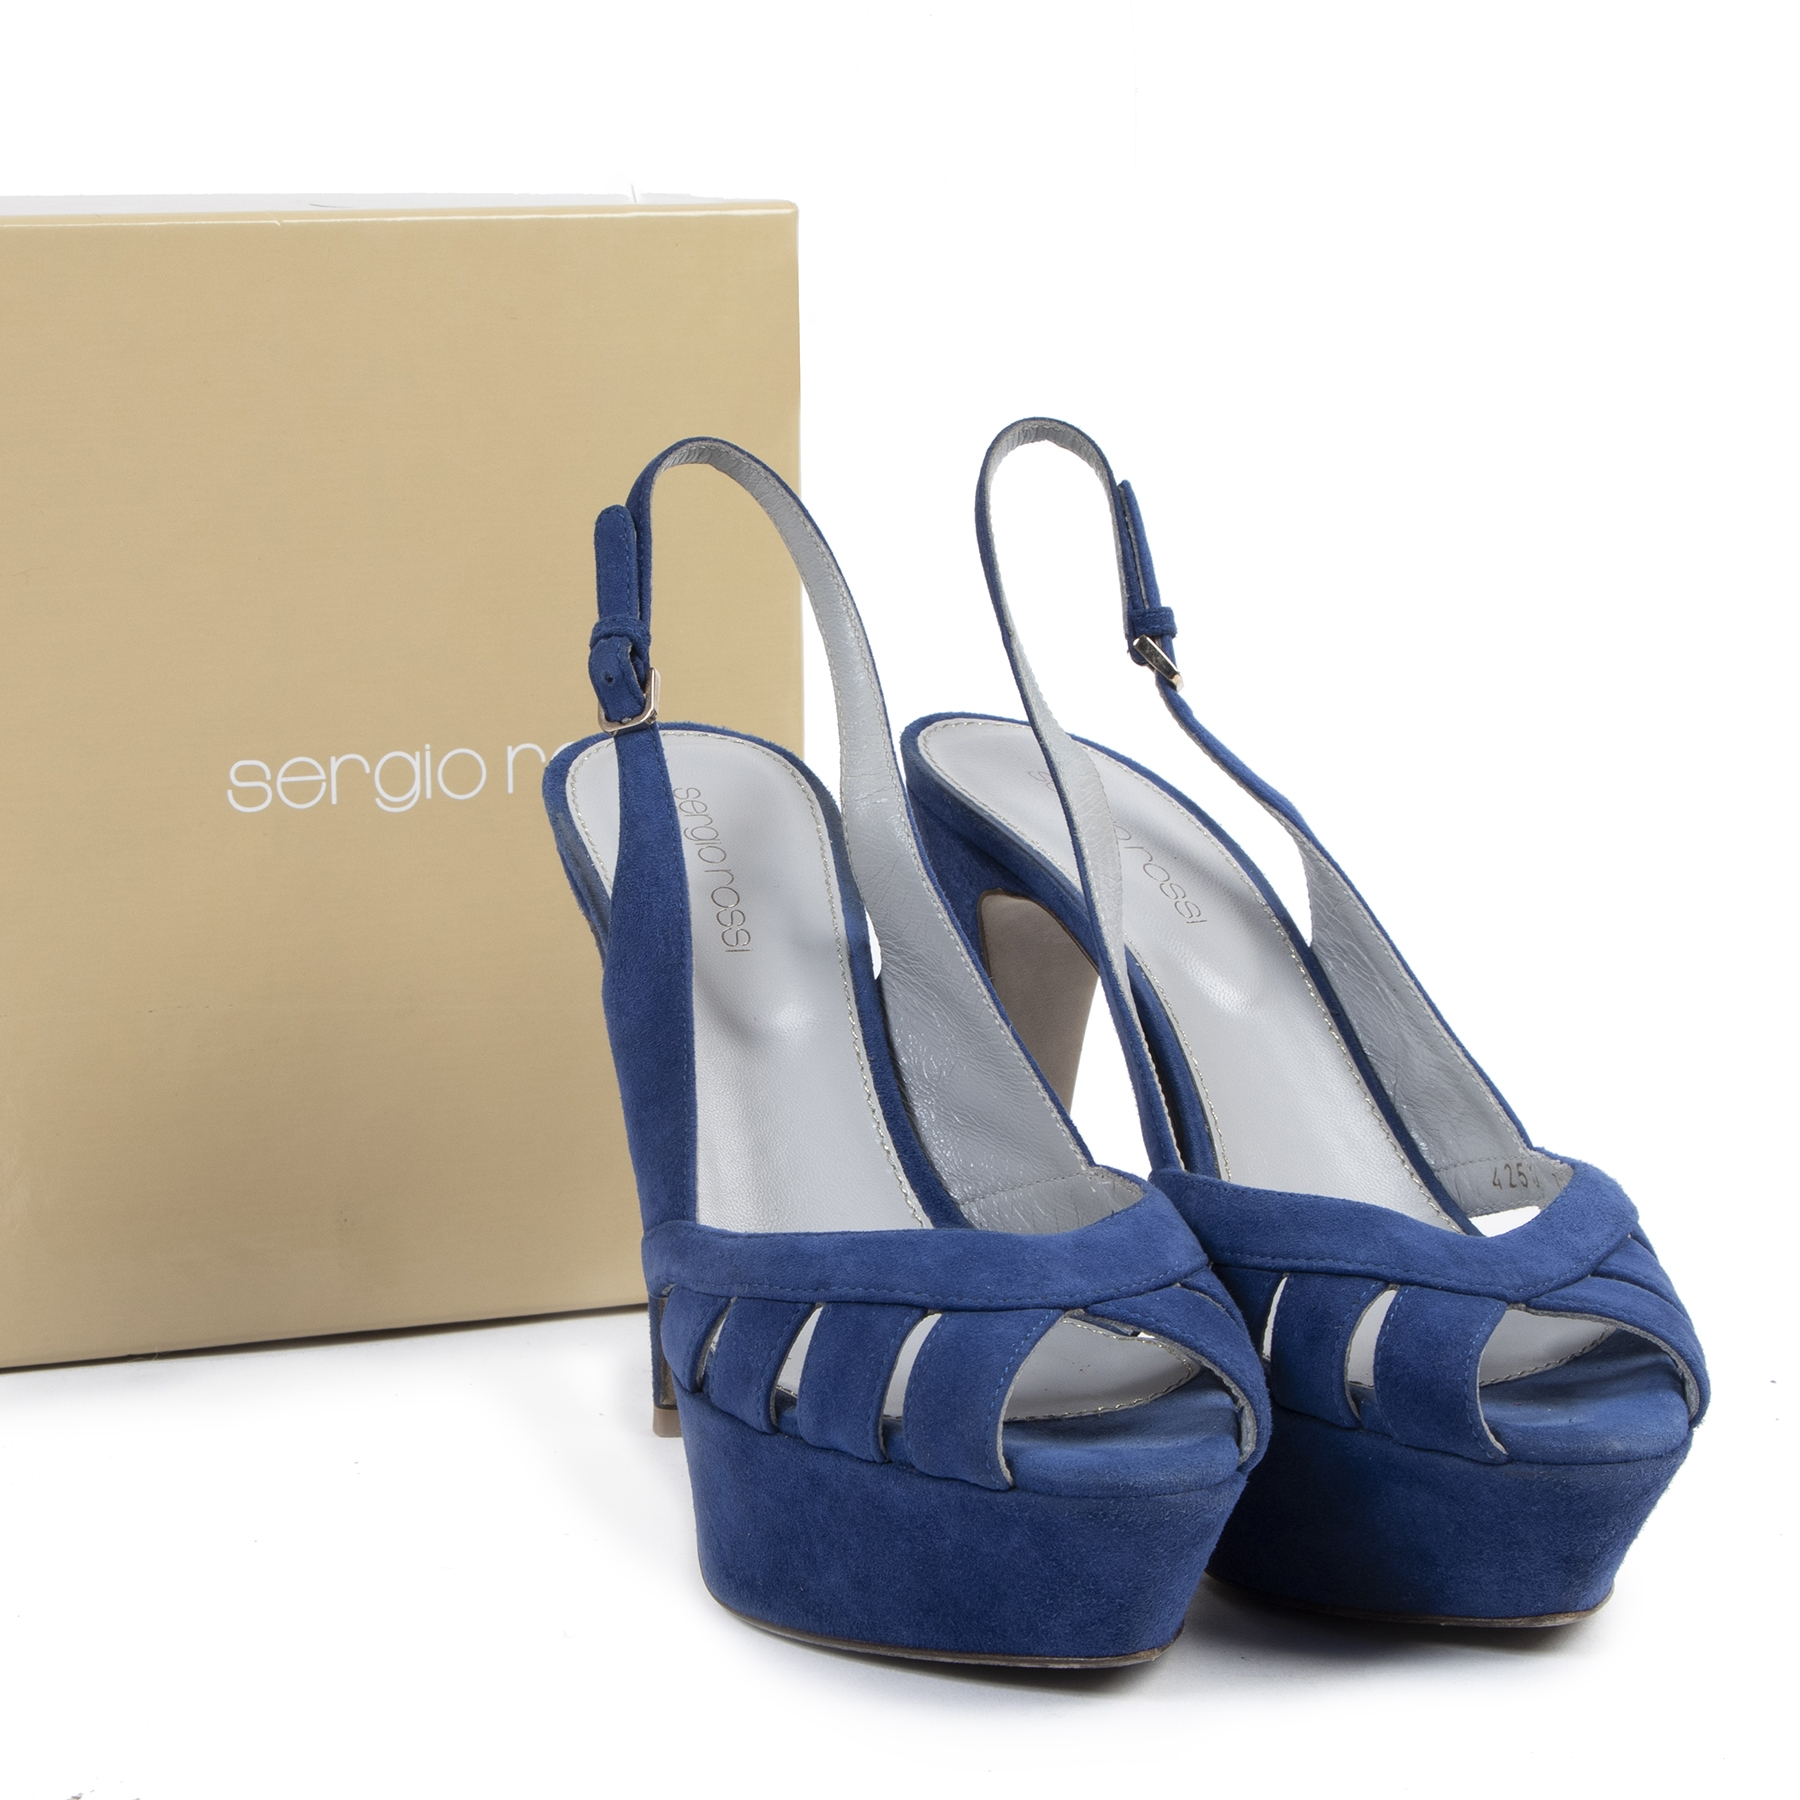 Authentique seconde-main vintage Sergio Rossi Cobalt Blue Platform Sandals - Size 37 achète en ligne webshop LabelLOV